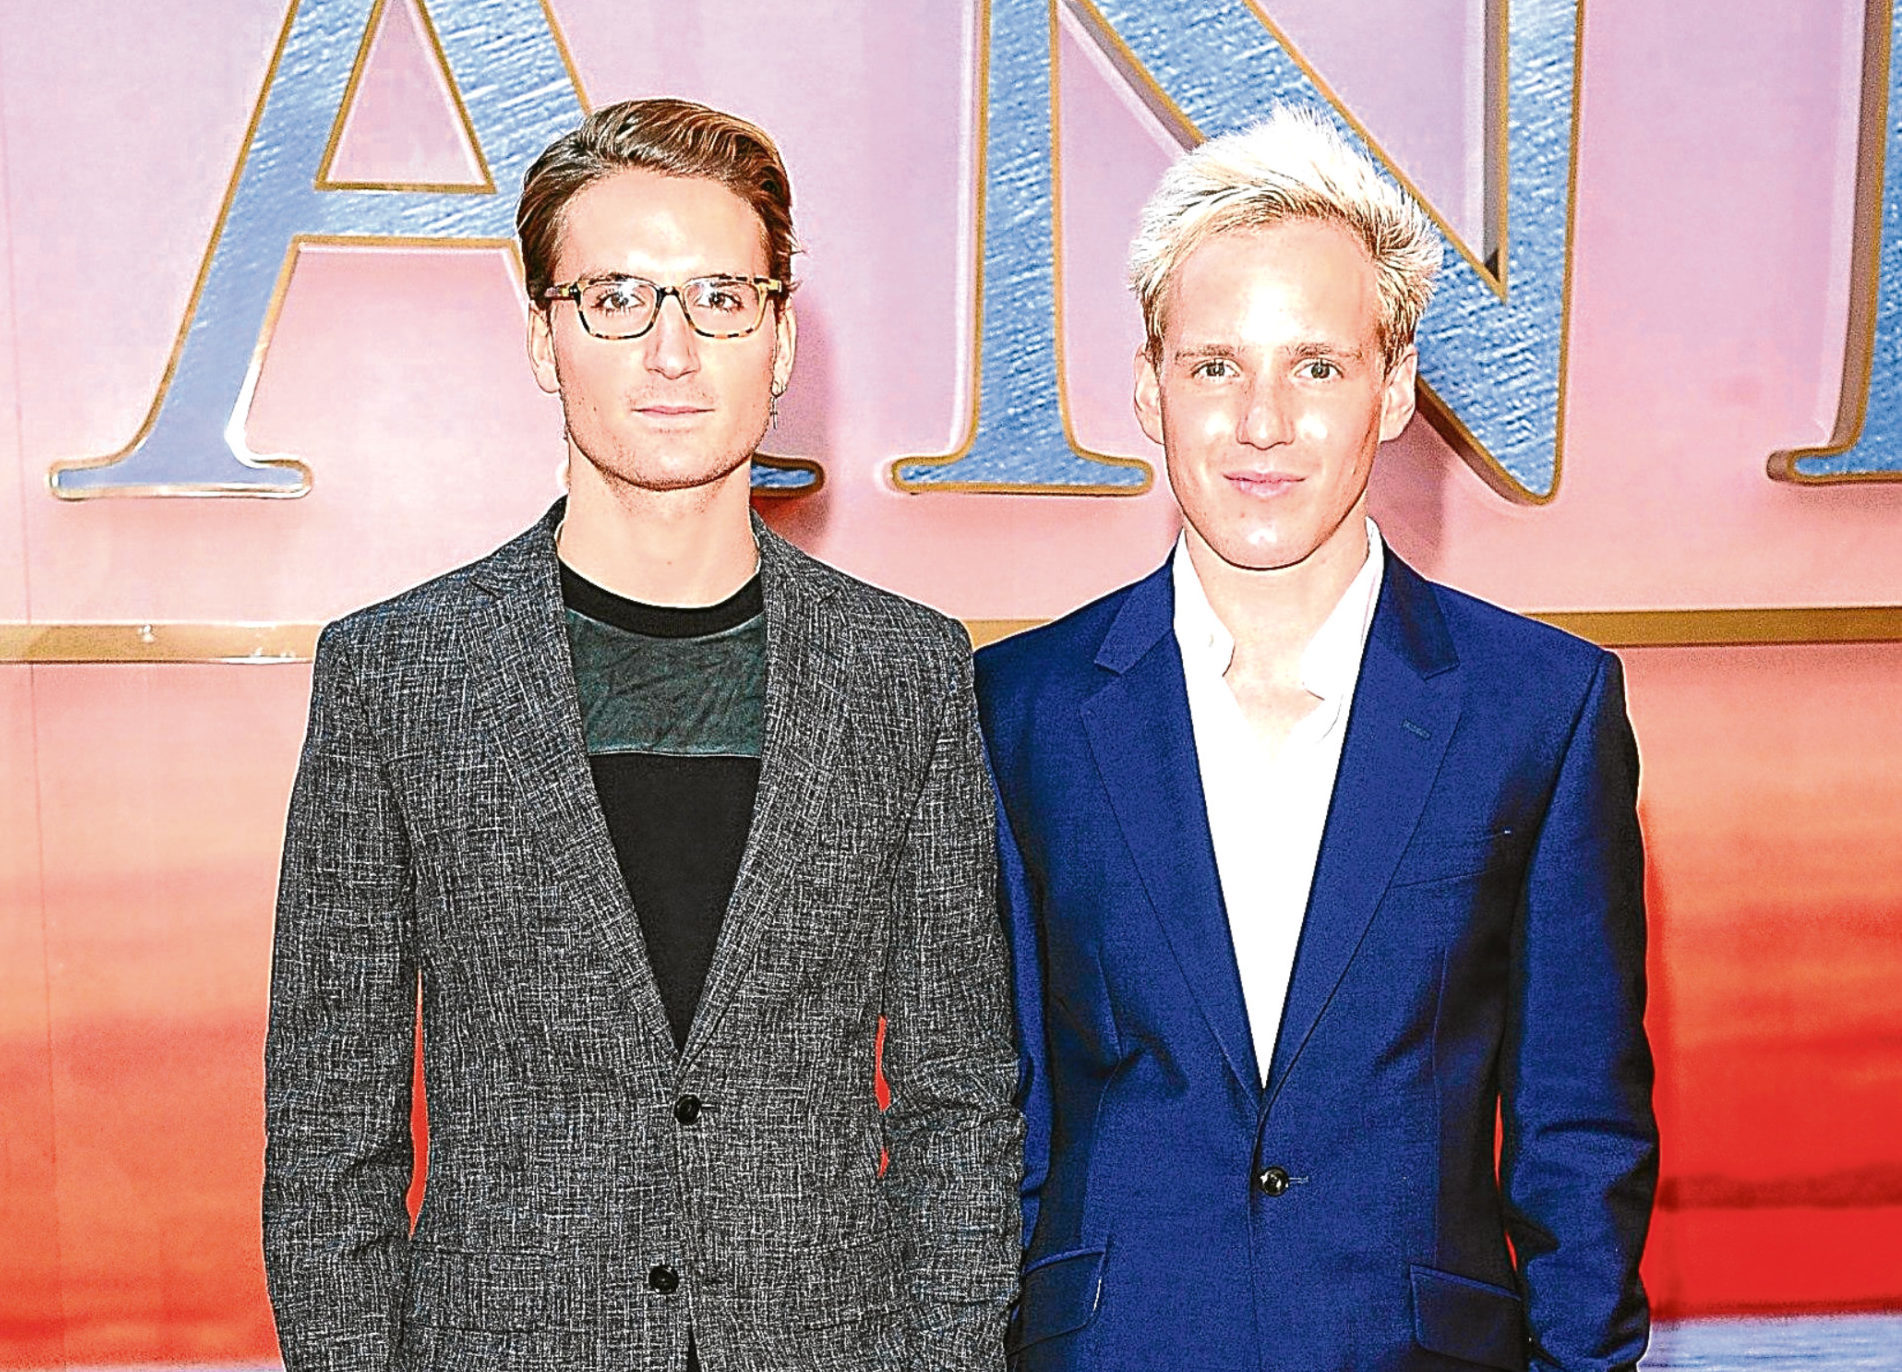 Jamie Laing, right, with Made in Chelsea co-star Ollie Proudlock